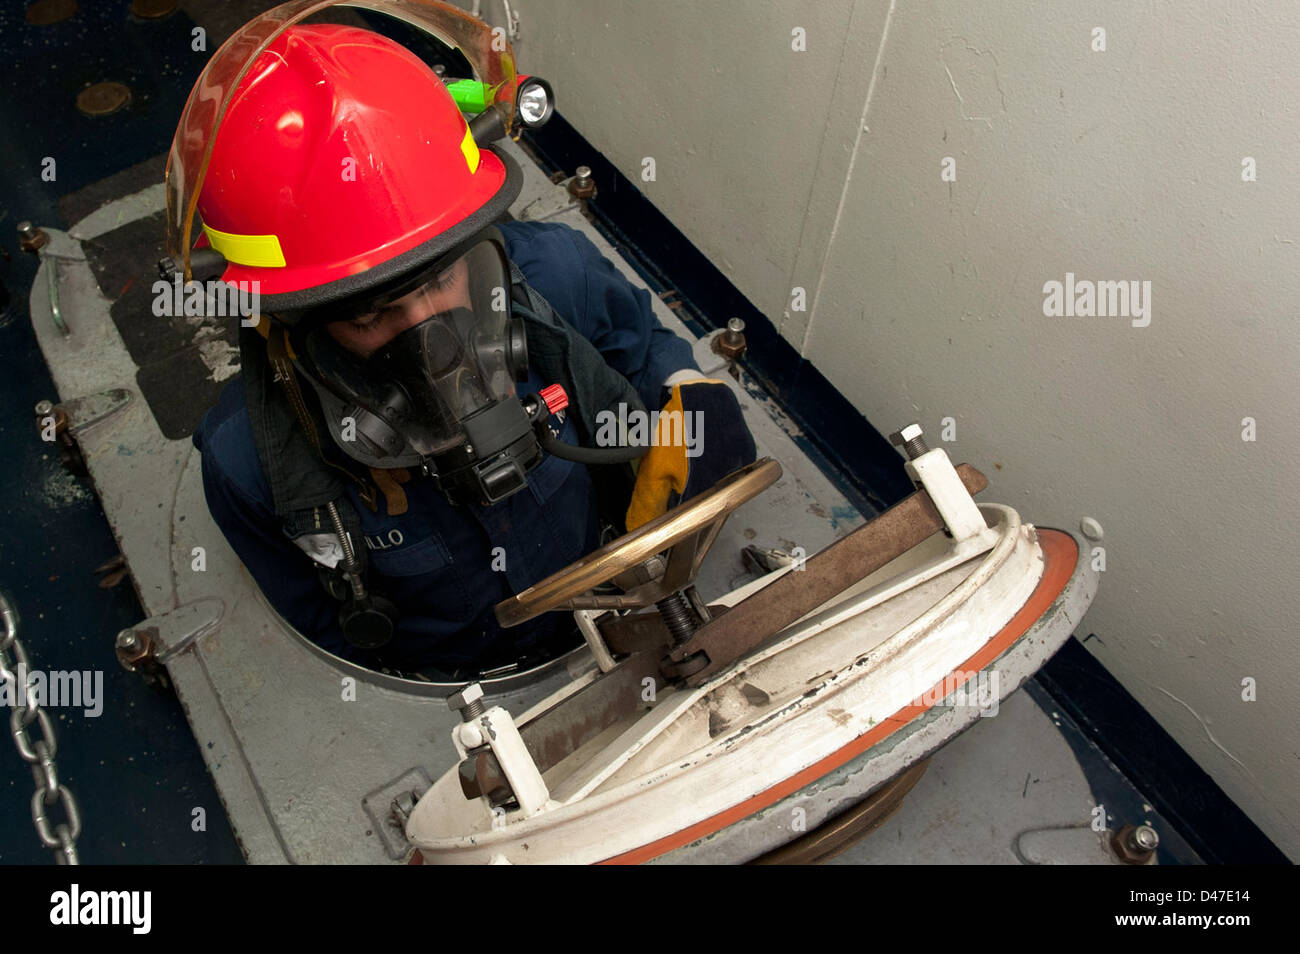 A Sailor enters a space during a toxic gas damage control drill. - Stock Image